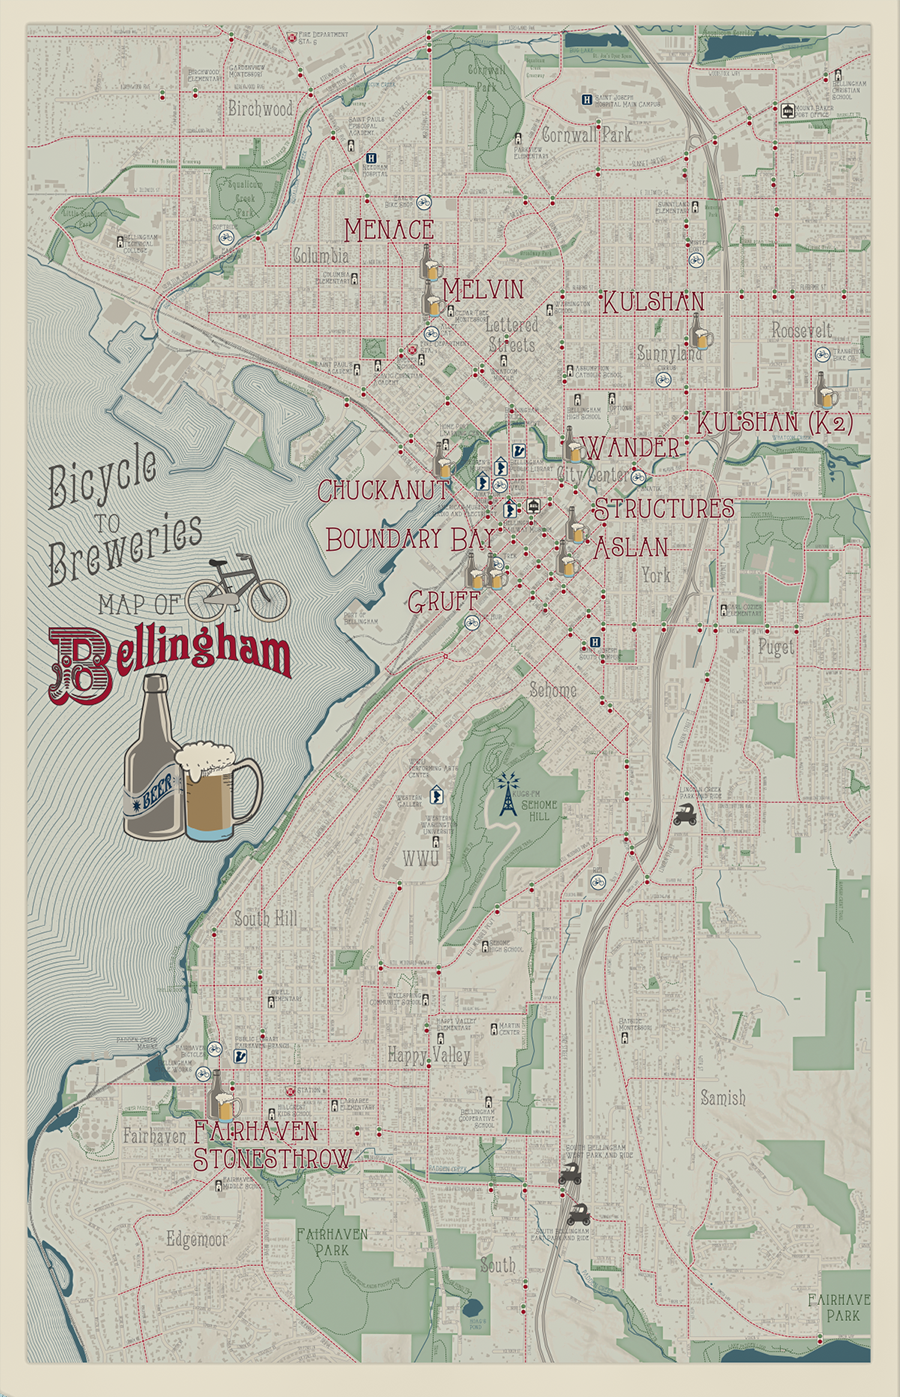 Bellingham Beer & Bikes Map by Sarah Bell